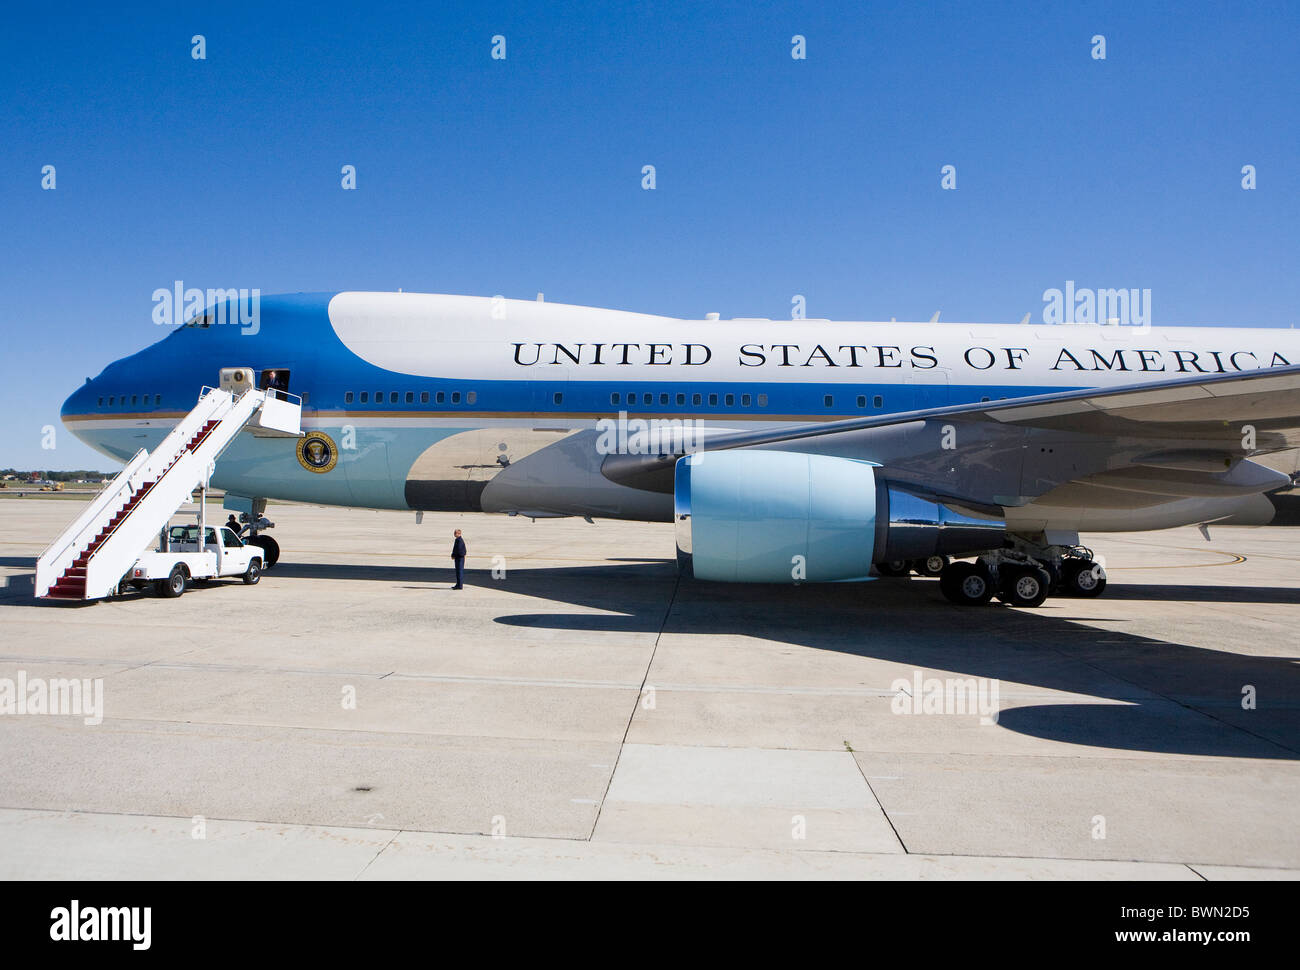 Air Force One on the tarmac at Andrews Air Force Base Stock